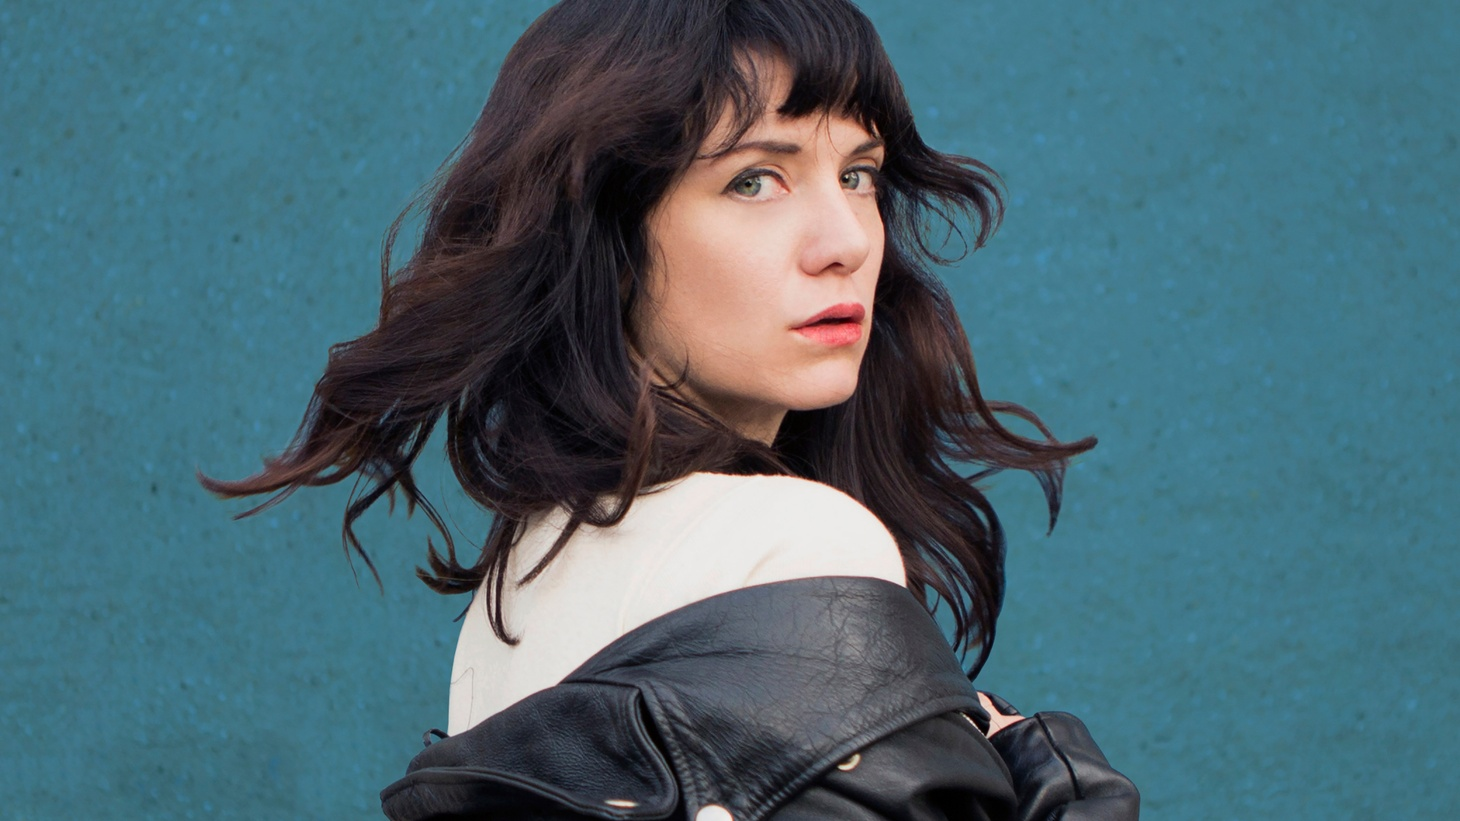 Highway Queen is an apt name for Nikki Lane's forthcoming album. The Outlaw country singer has clocked many miles on the road with her tough talking songs.